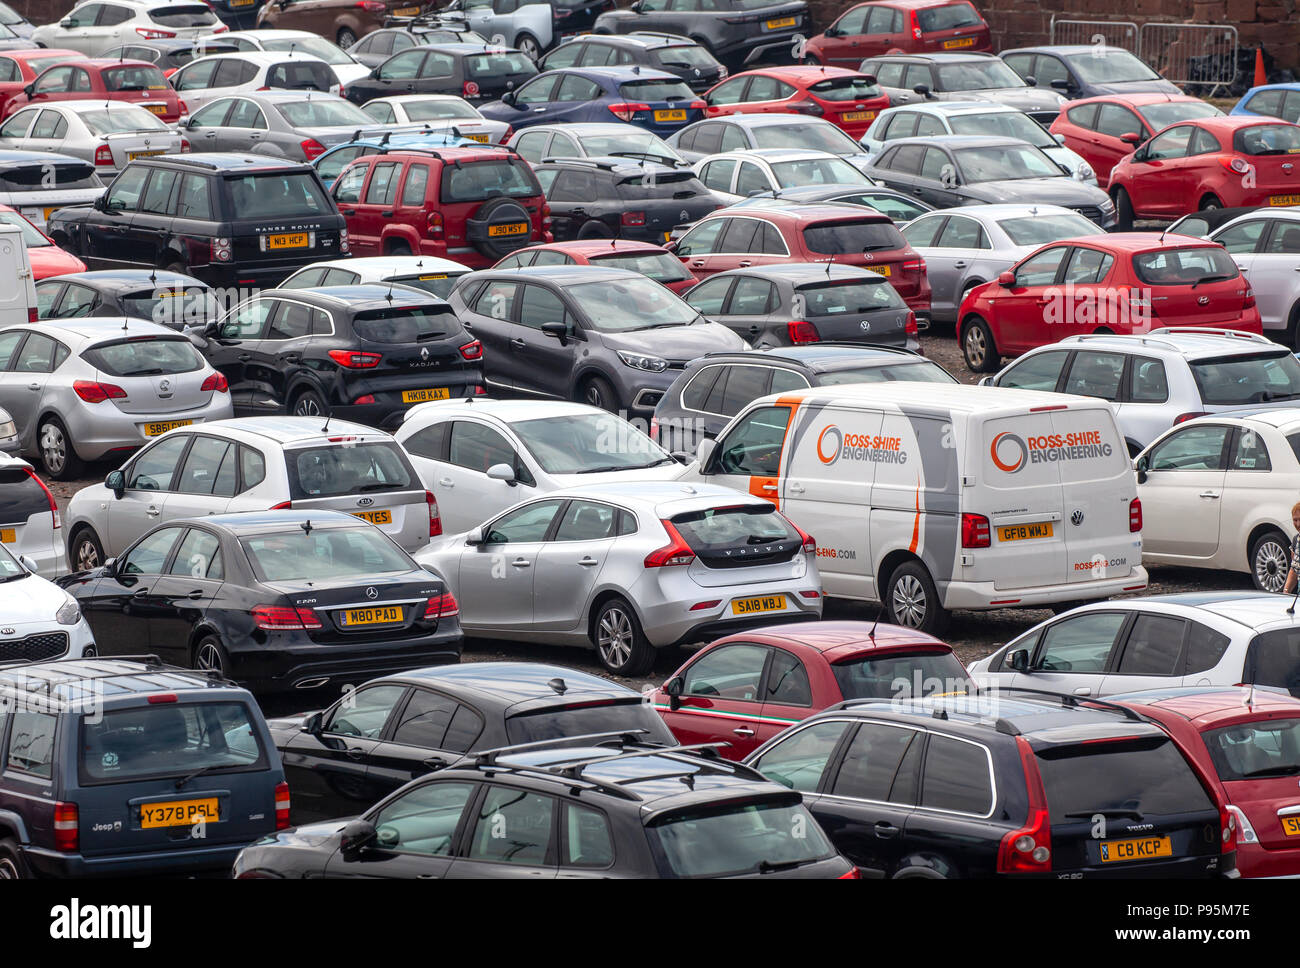 Elevated view of vehicles (Cars and a van) parked in a car park at Ardrossan Harbour, North Ayrshire, Scotland, UK - Stock Image